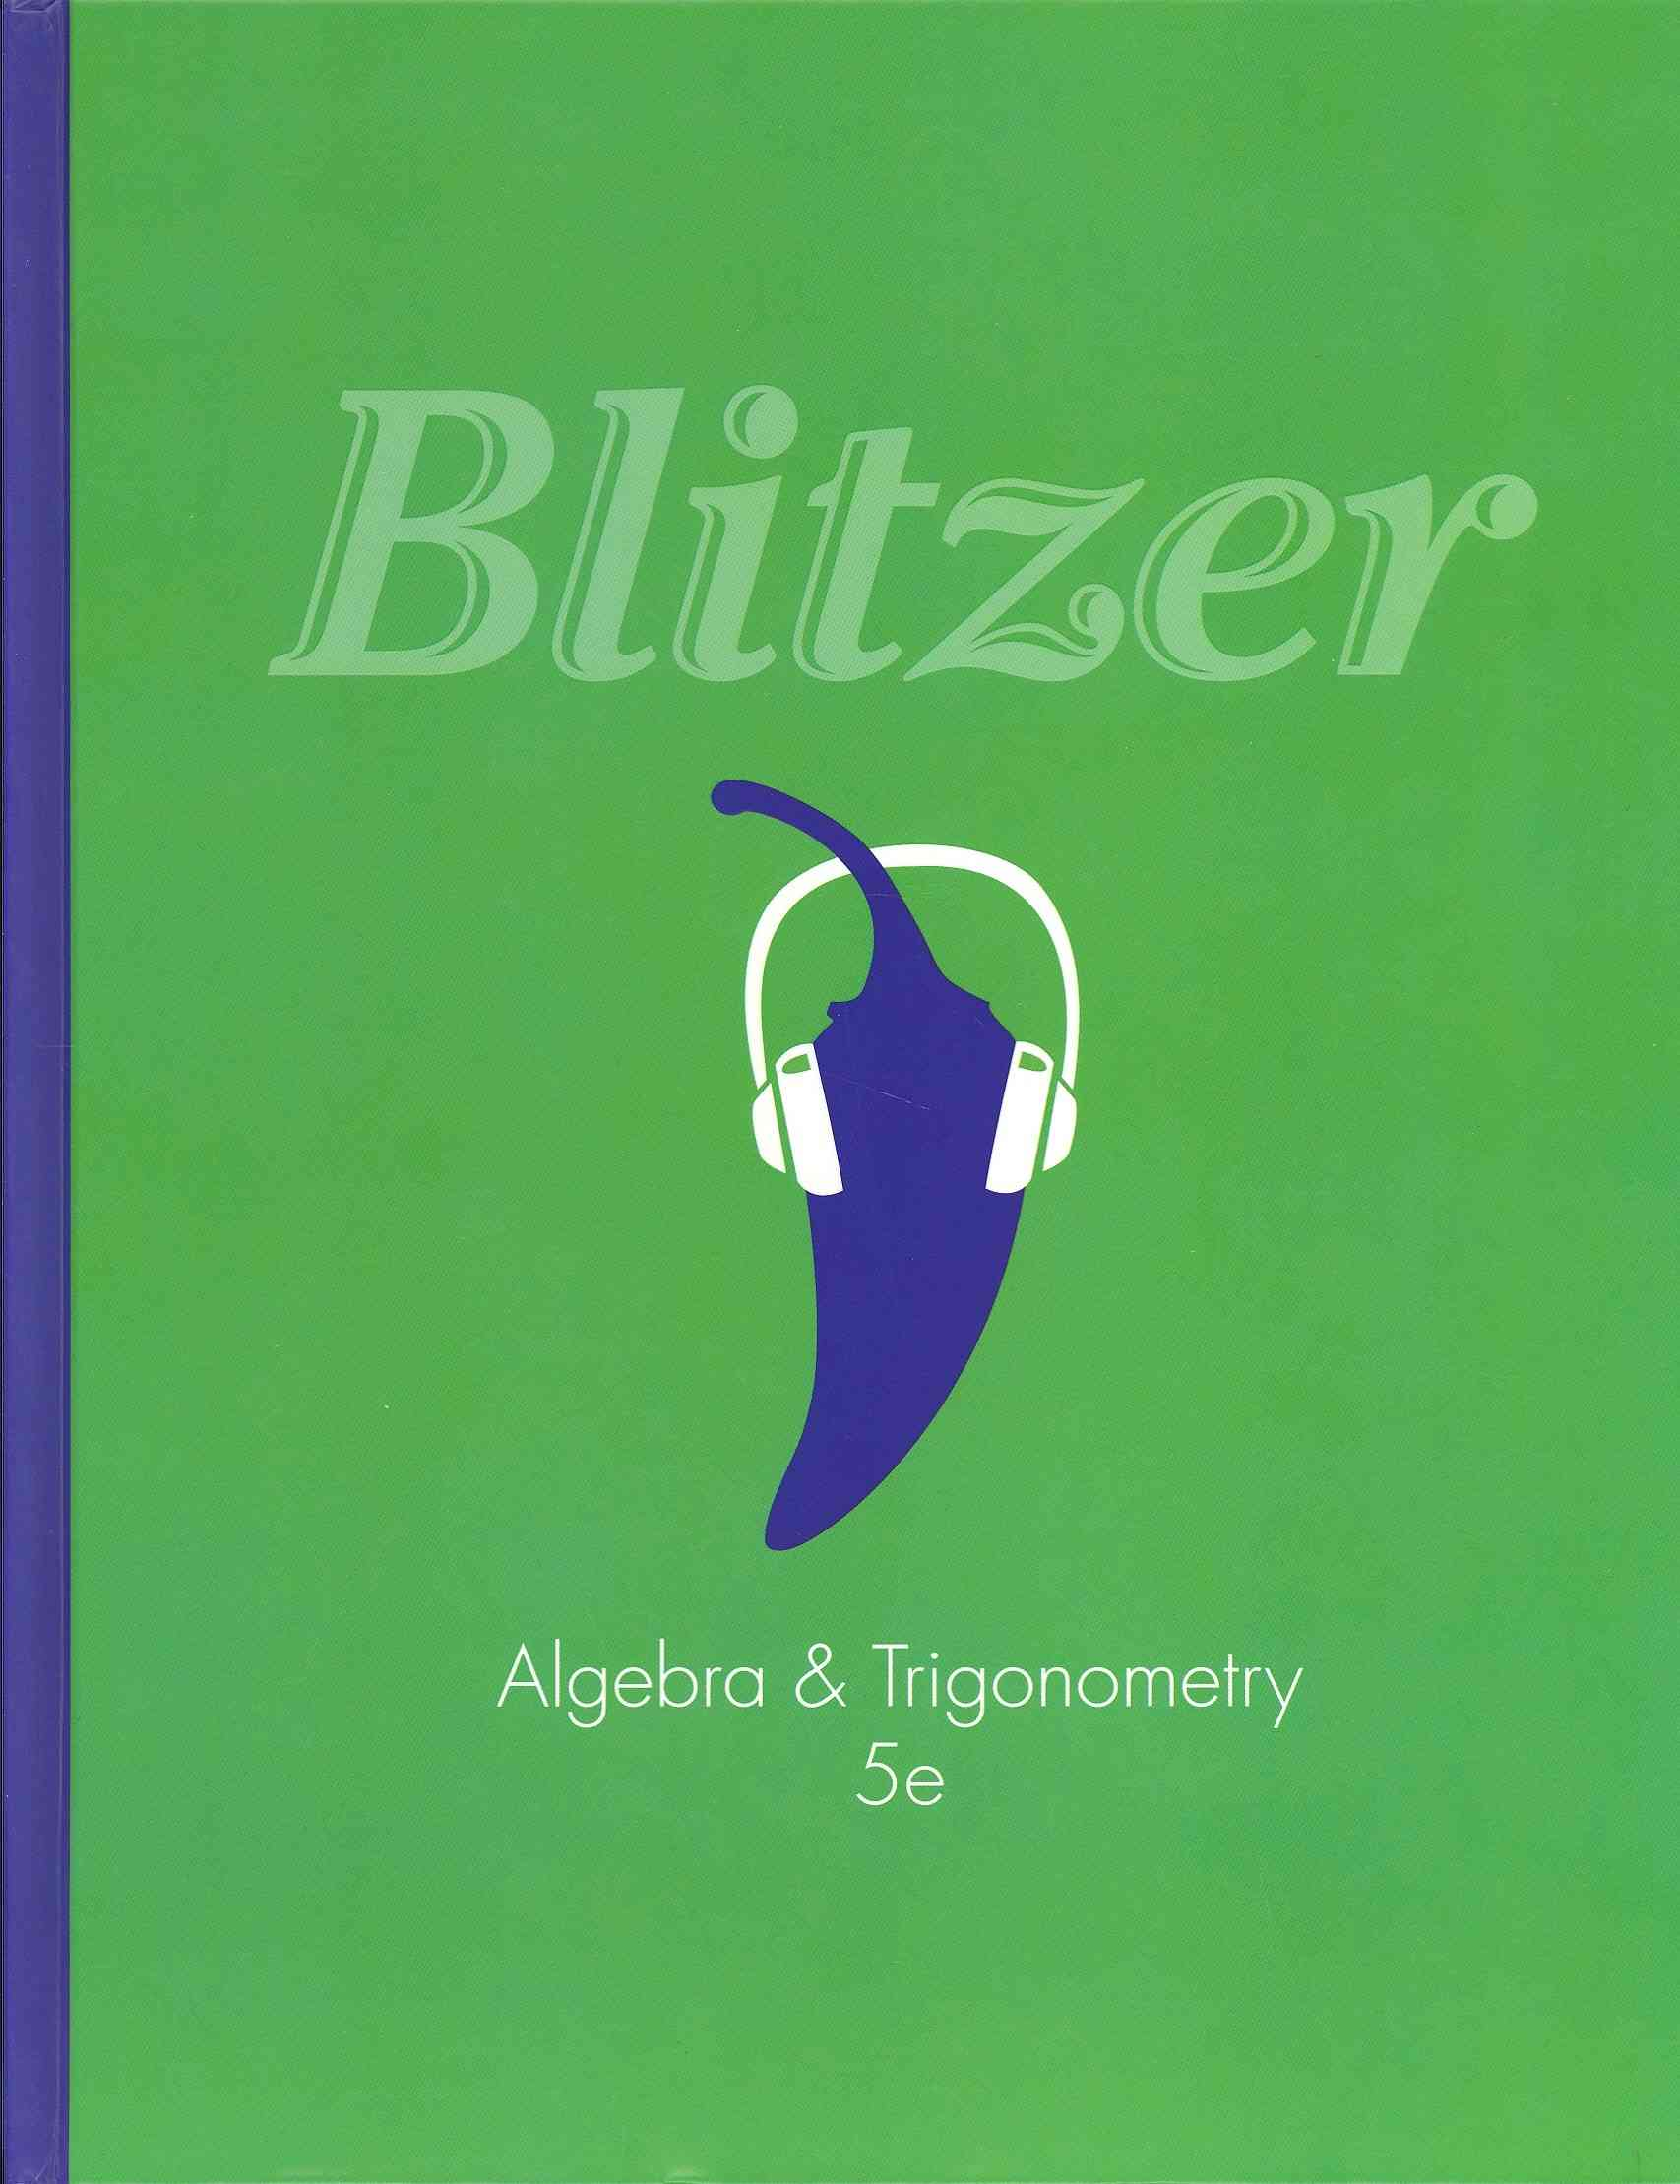 Algebra and Trigonometry By Blitzer, Robert F.